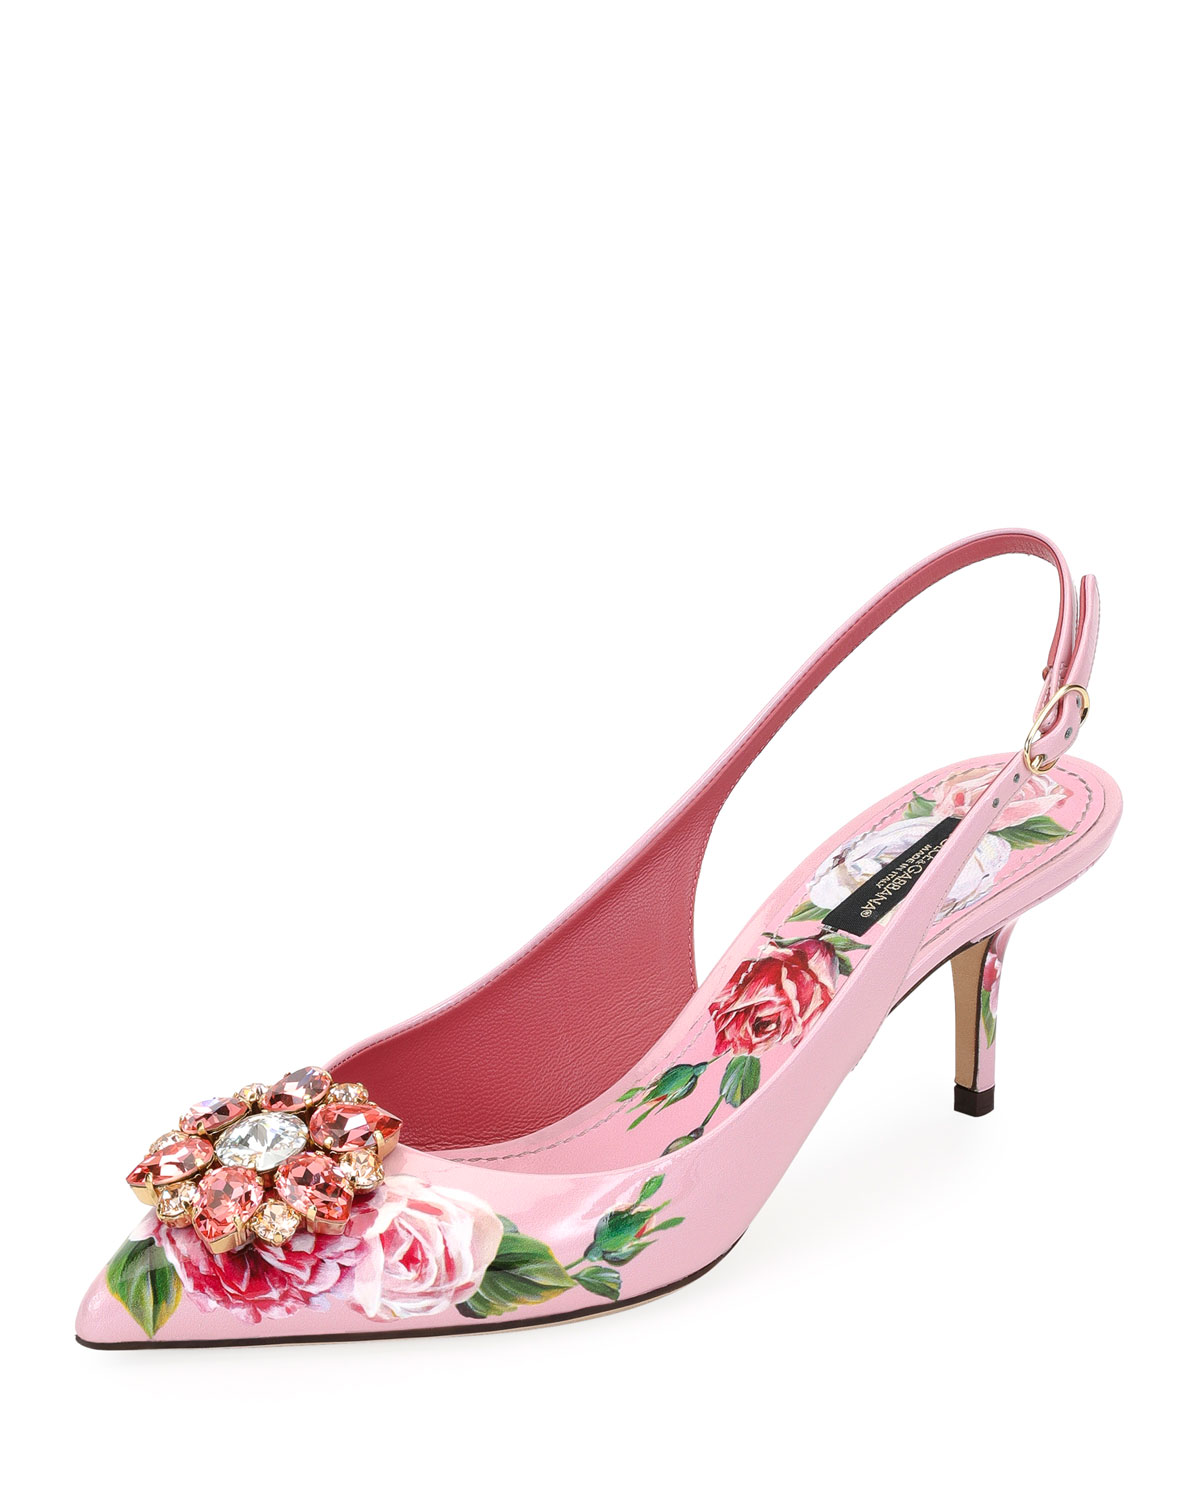 6a07e7cb28a Dolce   Gabbana Jeweled Floral-Print Patent Leather Slingback Pumps ...